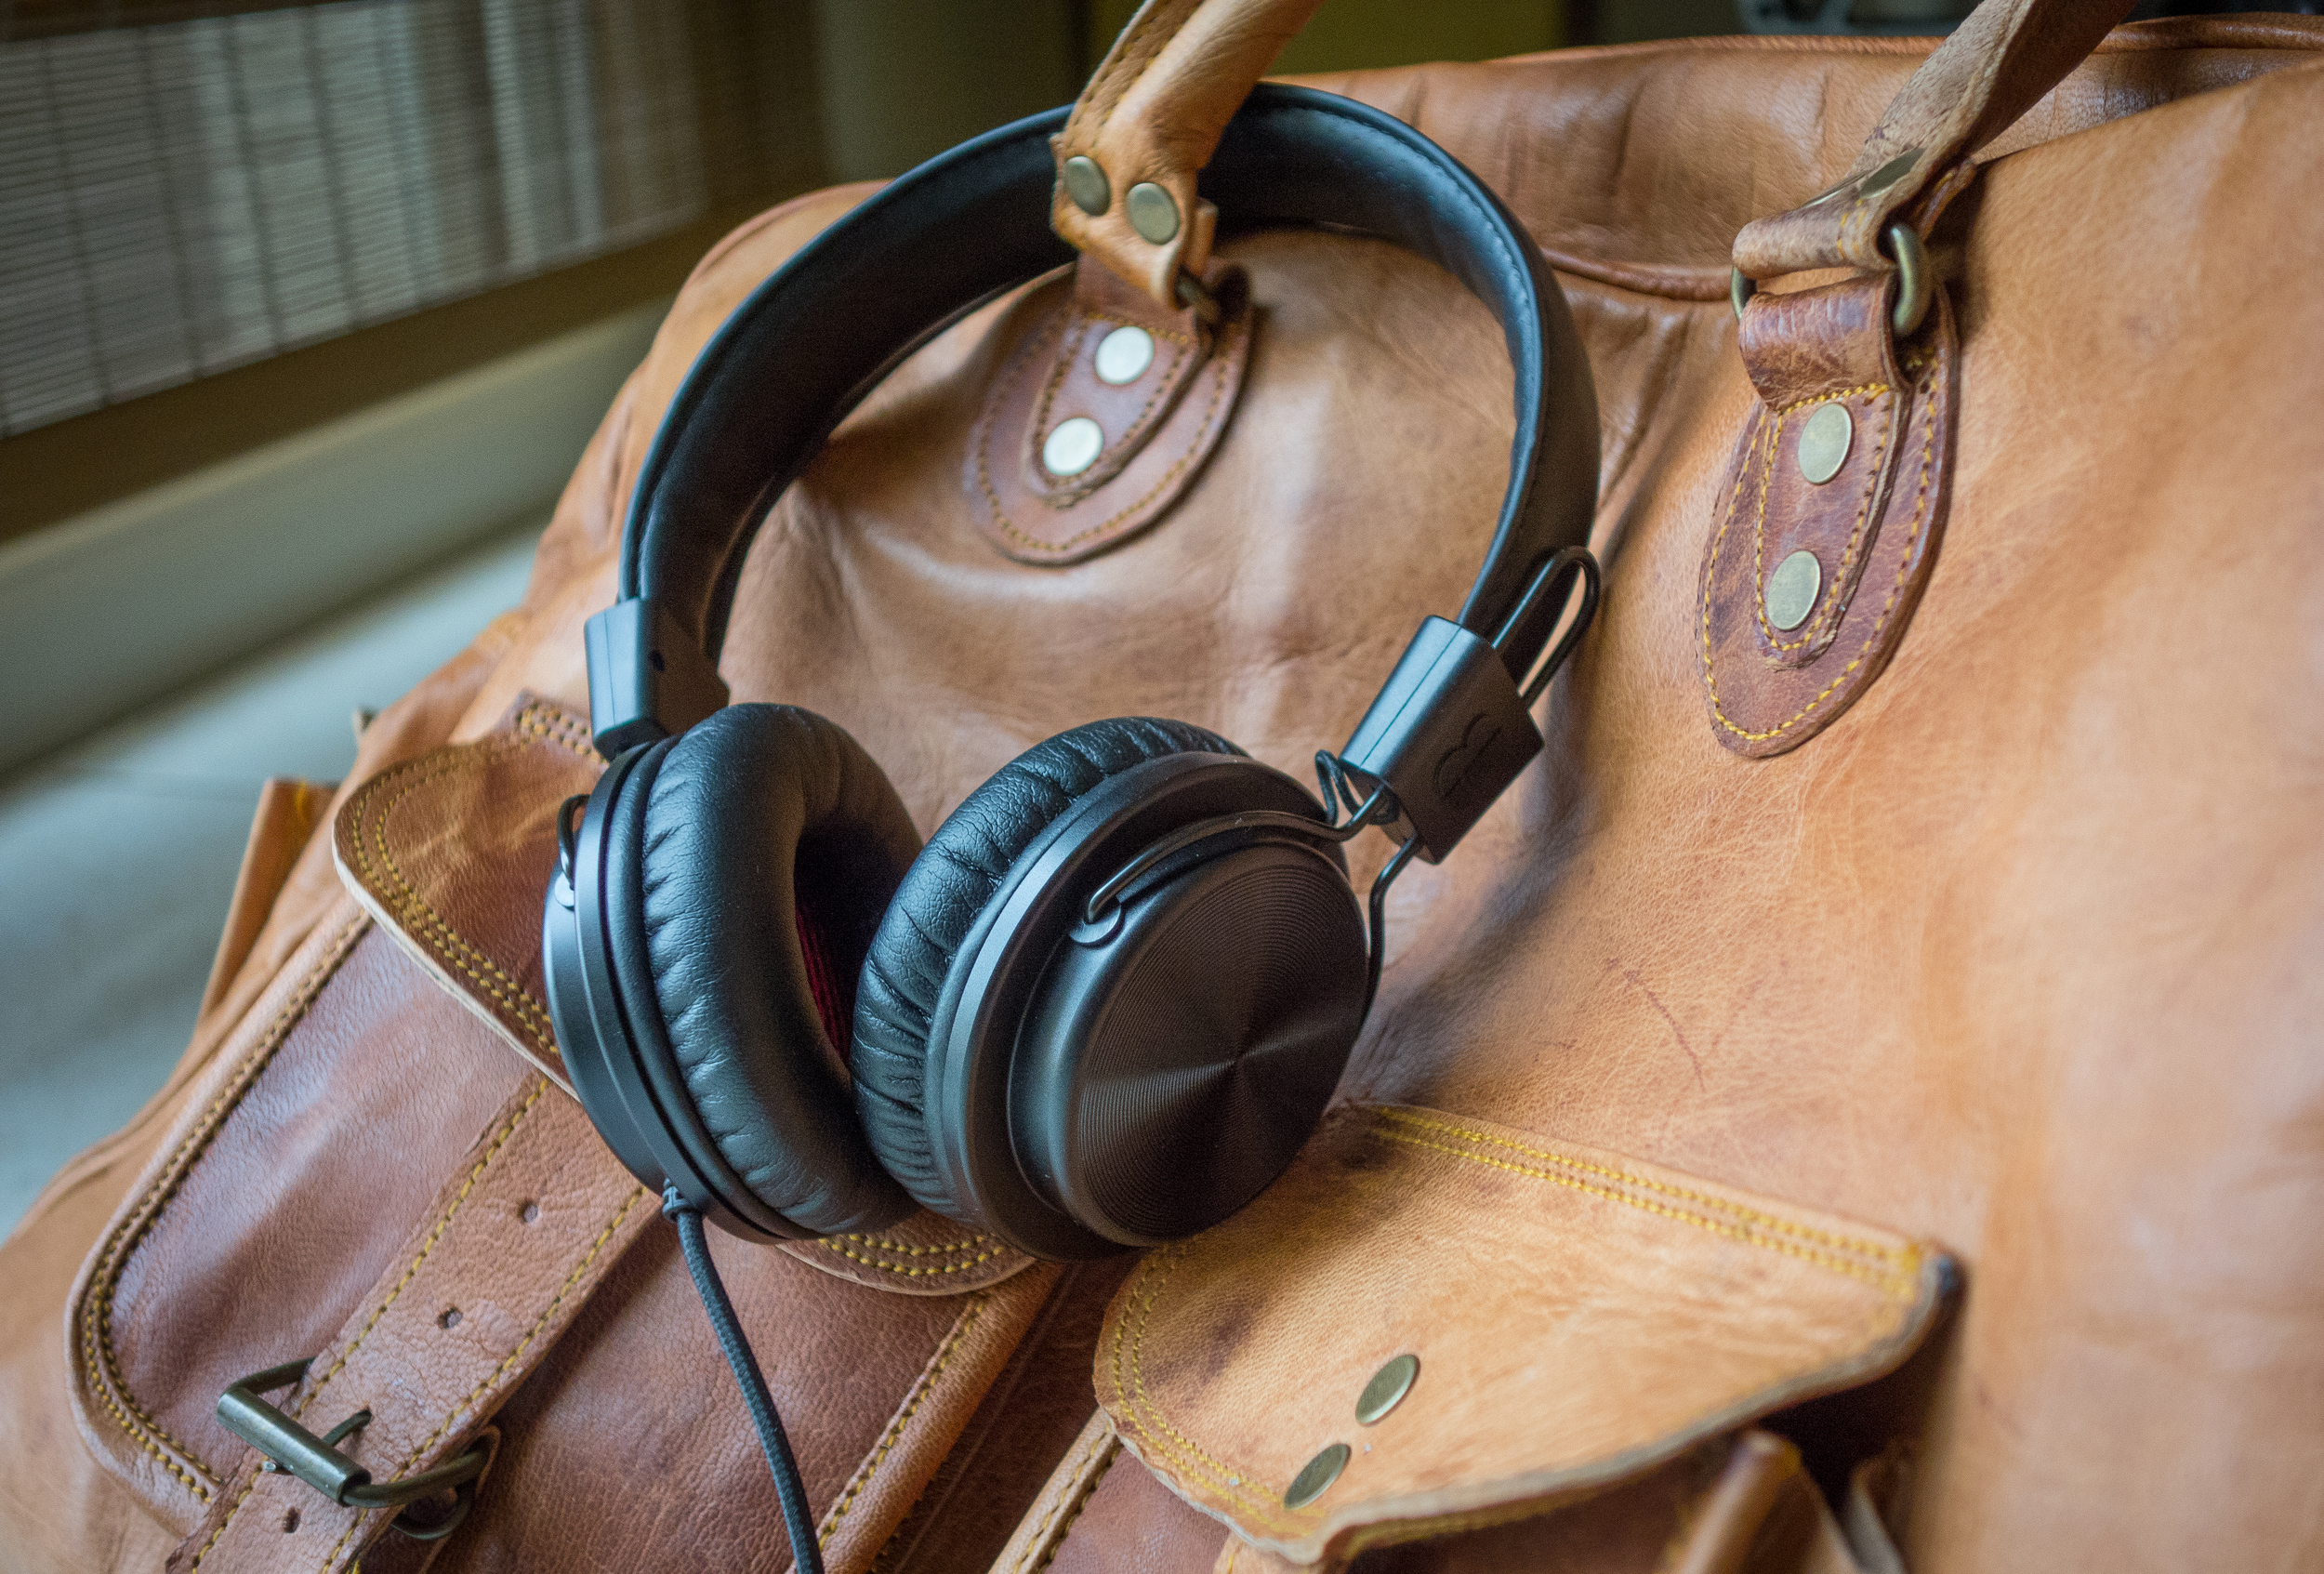 The Bloc & Roc Galvanize S1 is a well built and light. Both things that make it a great headphone for travelling.